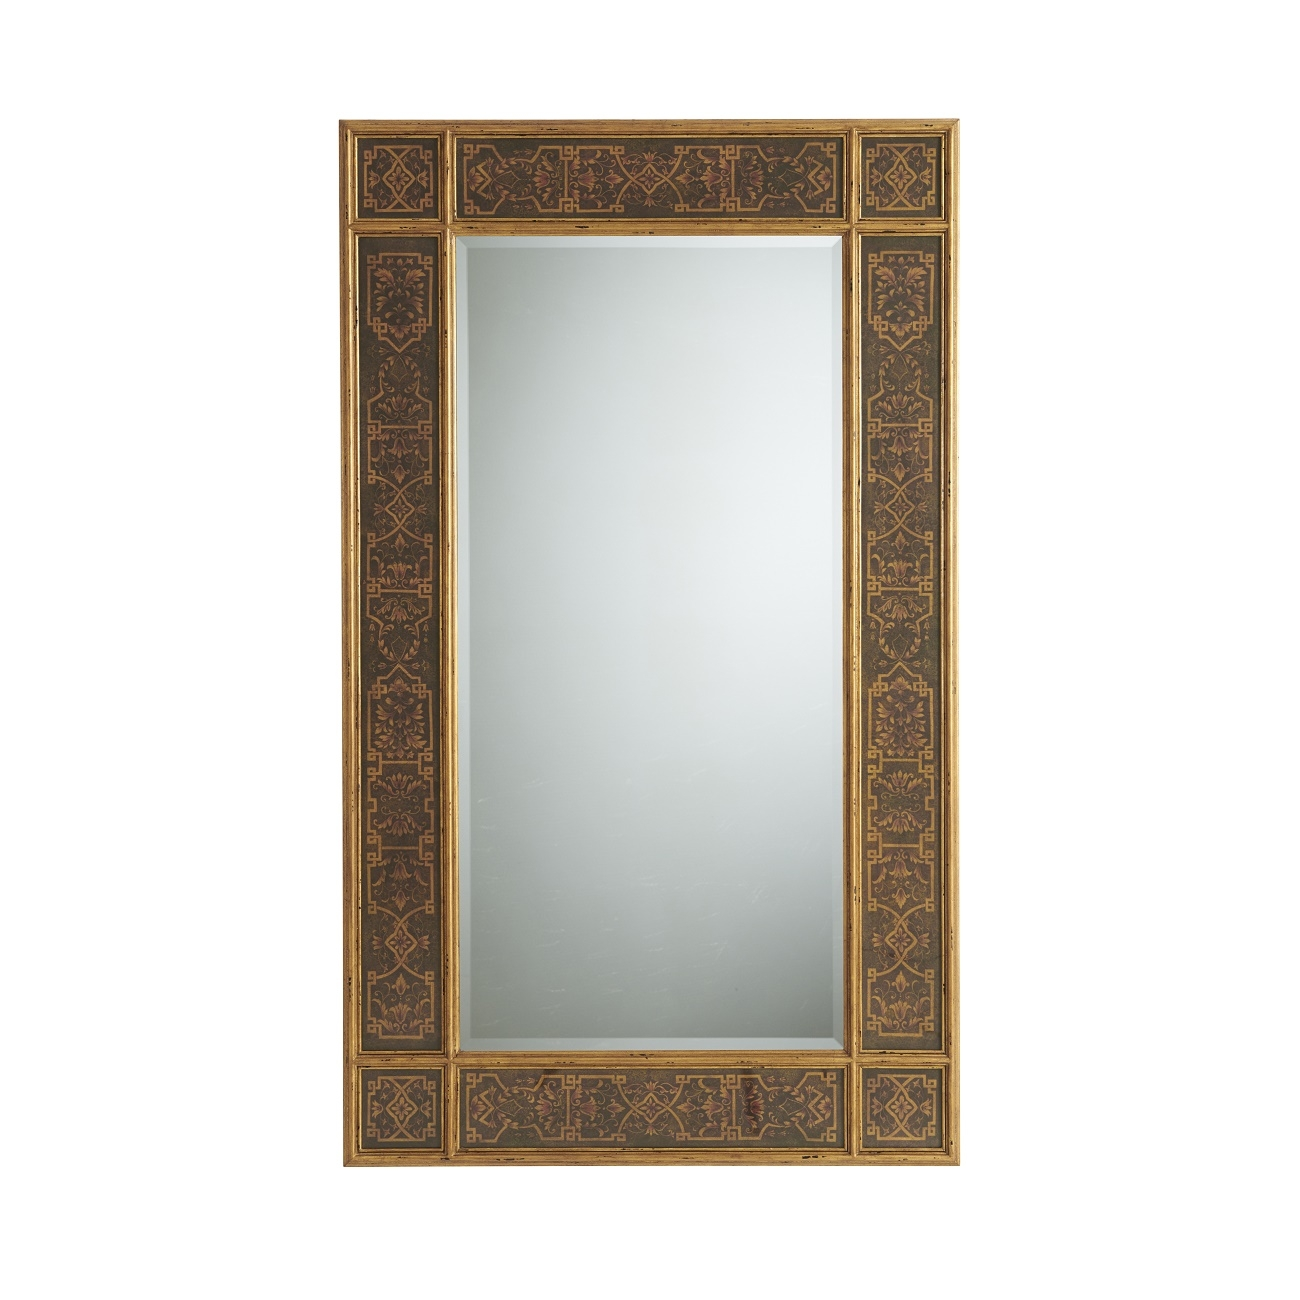 A Reverse Kufic Decoupage And Gilt Wood Framed Mirror The Intended For Gilt Framed Mirrors (Image 4 of 15)